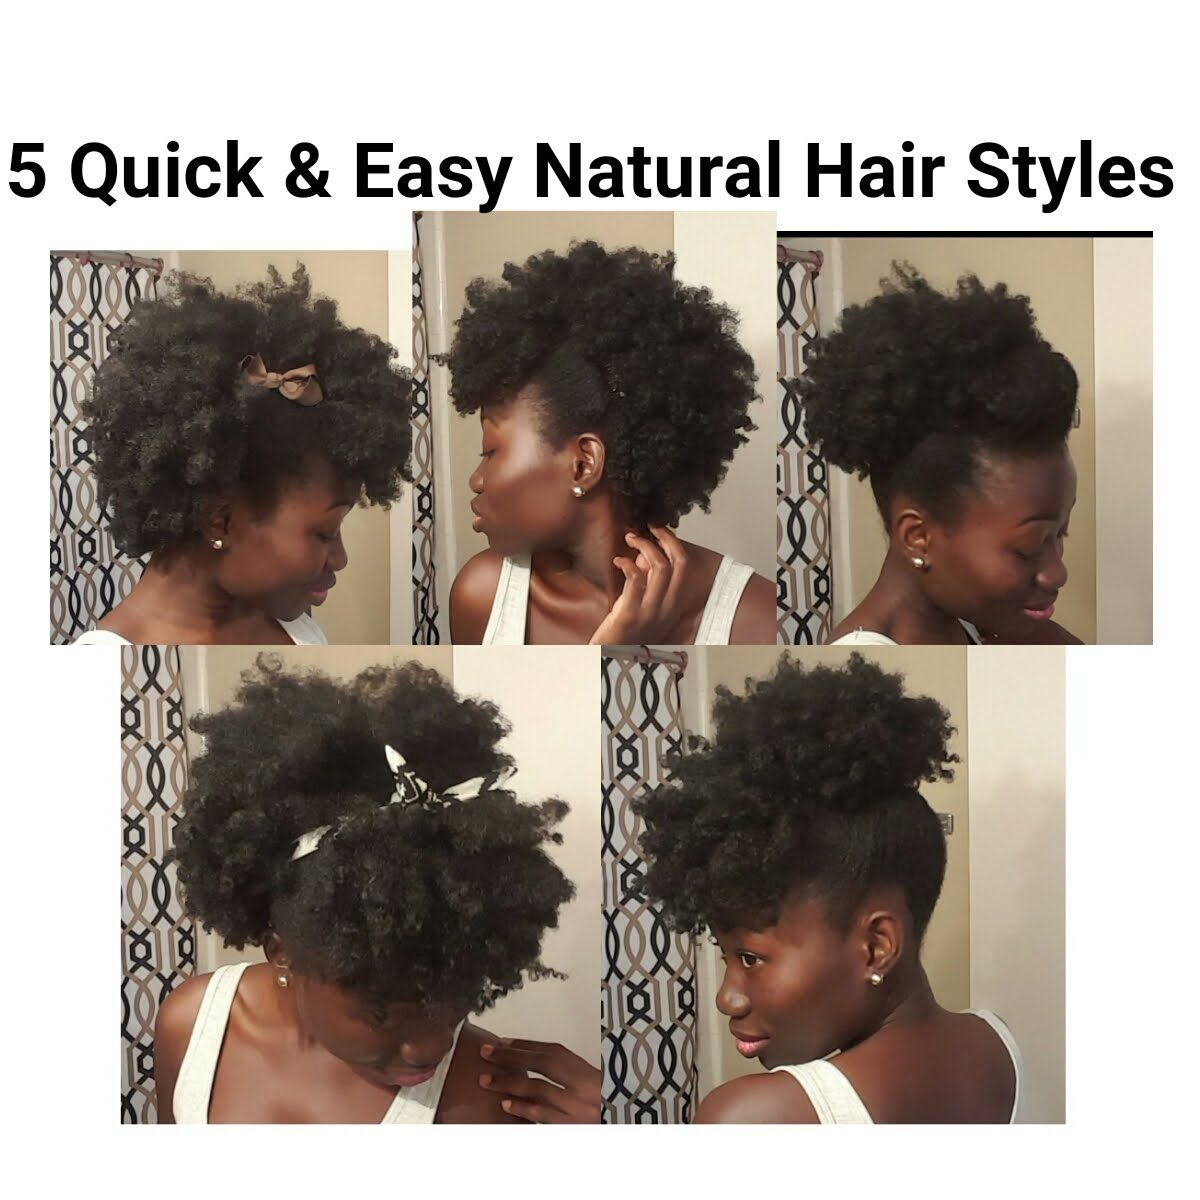 Simple Hairstyles For Natural N Hair : Quick easy natural hair styles short medium length